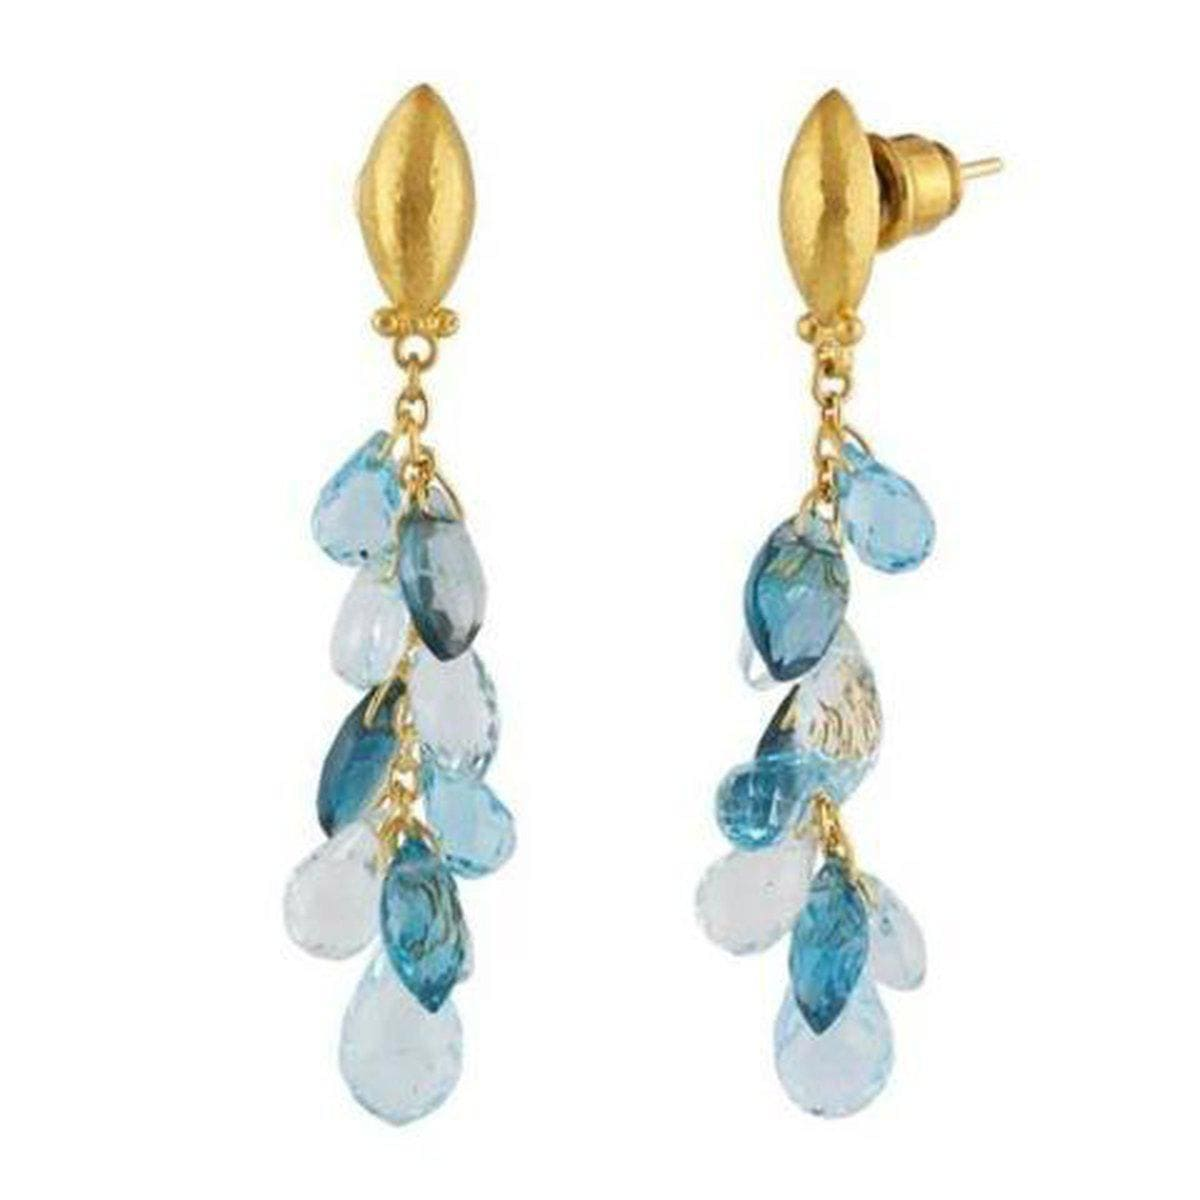 Delicate Hue 24K Gold Topaz Aquamarine Earrings - BE-BT-CLS-NV-GURHAN-Renee Taylor Gallery